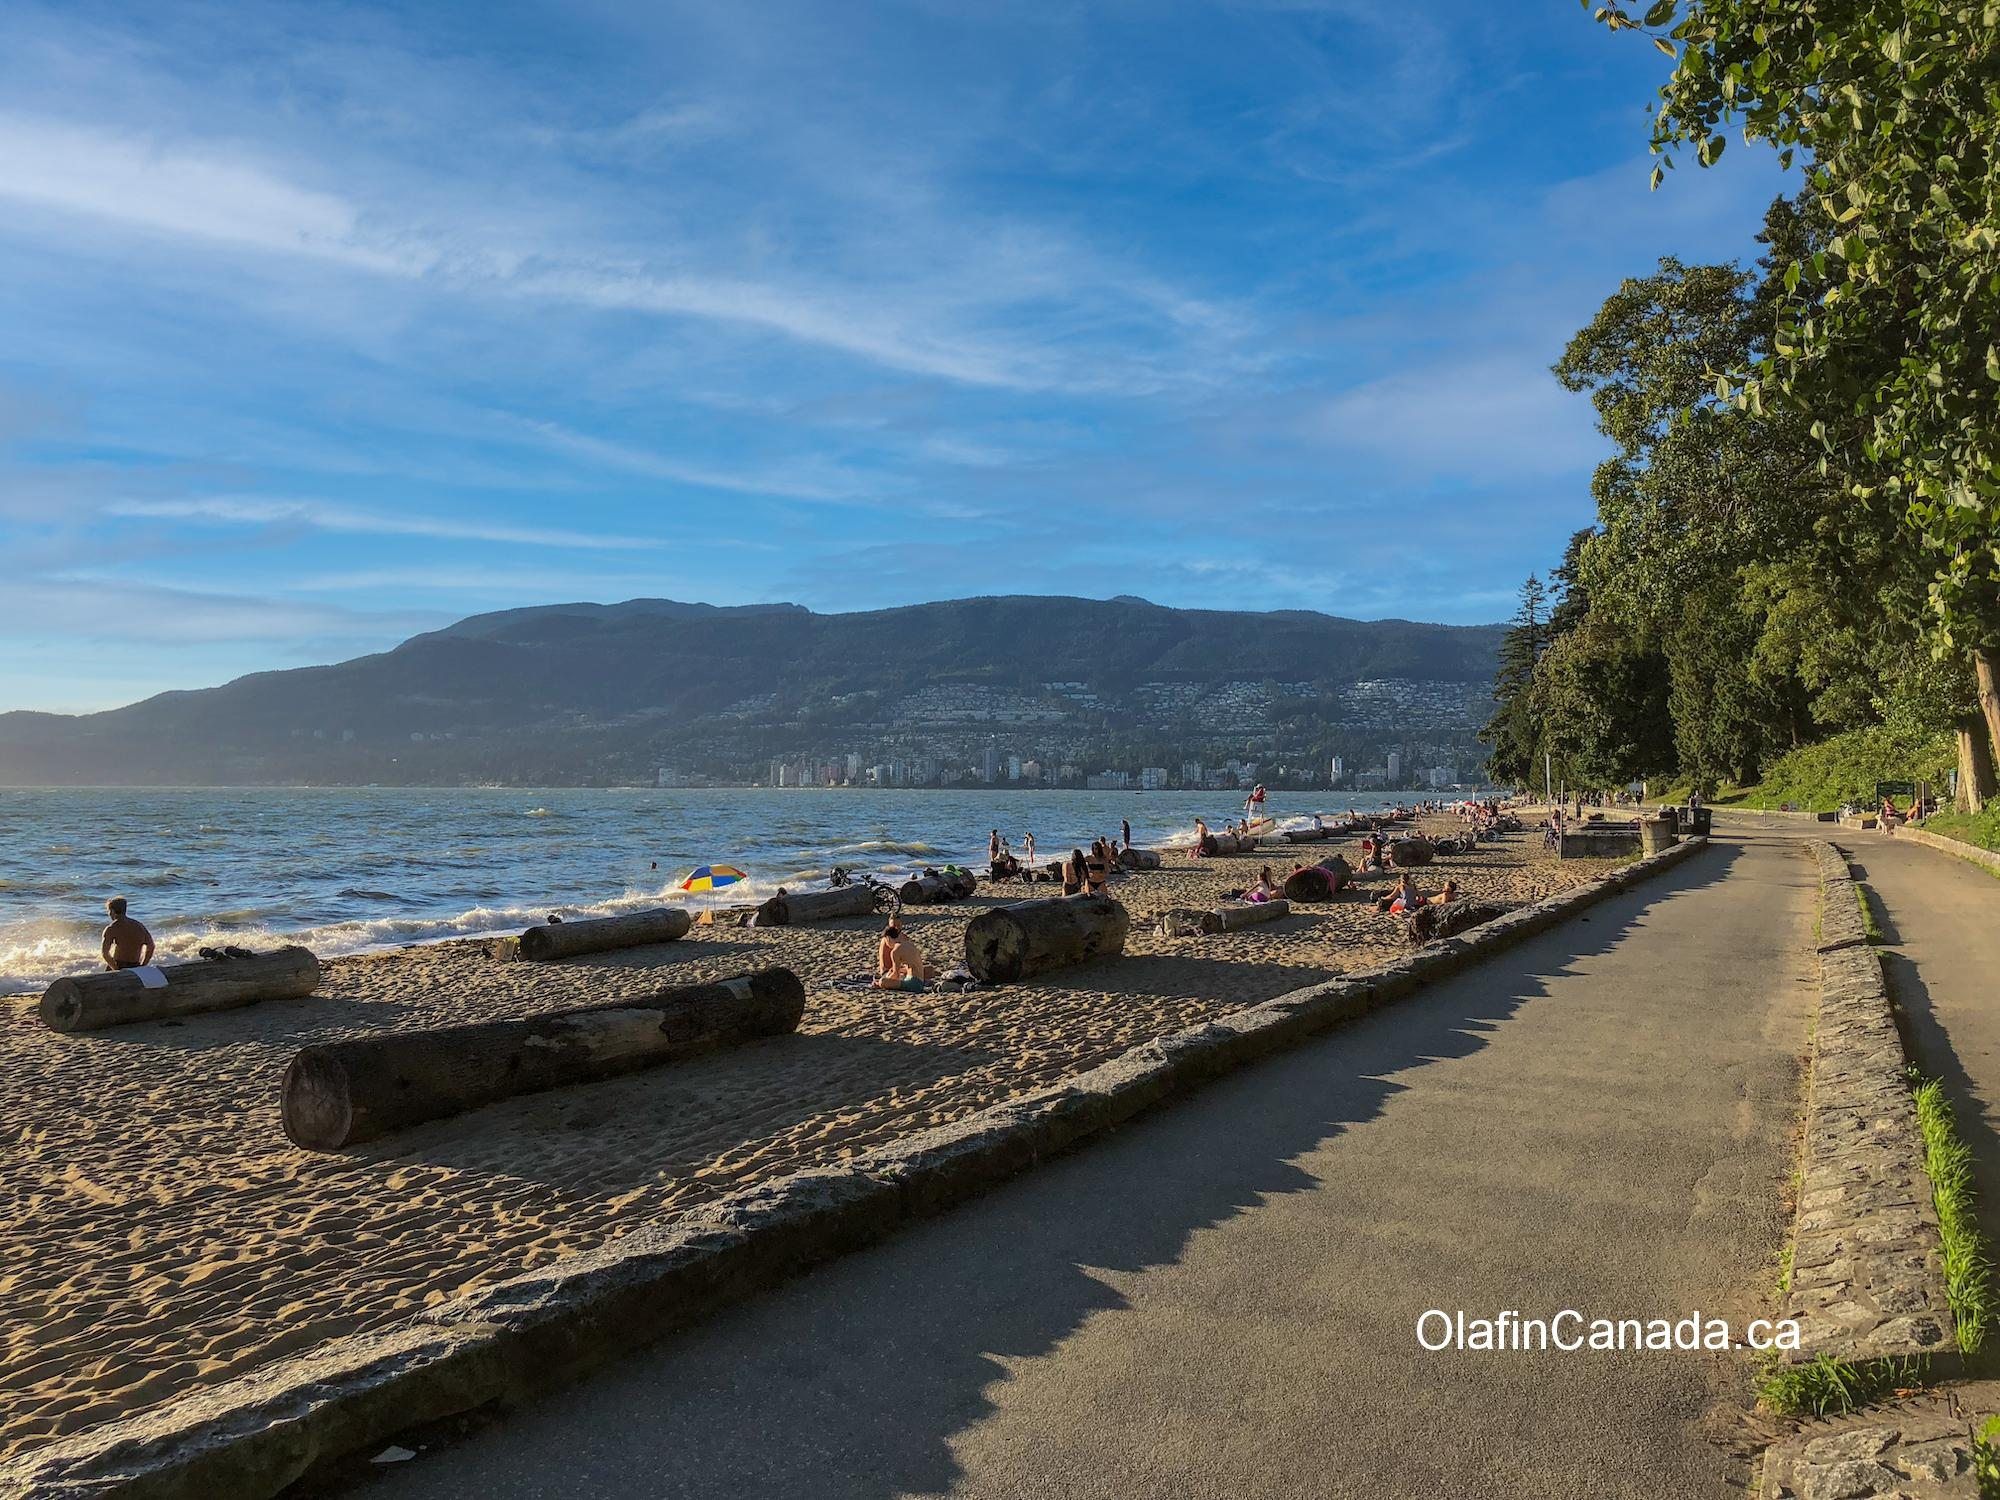 Sun tanning at Second Beach in Vancouver #olafincanada #britishcolumbia #discoverbc #vancouver #sunset #beach #stanleypark